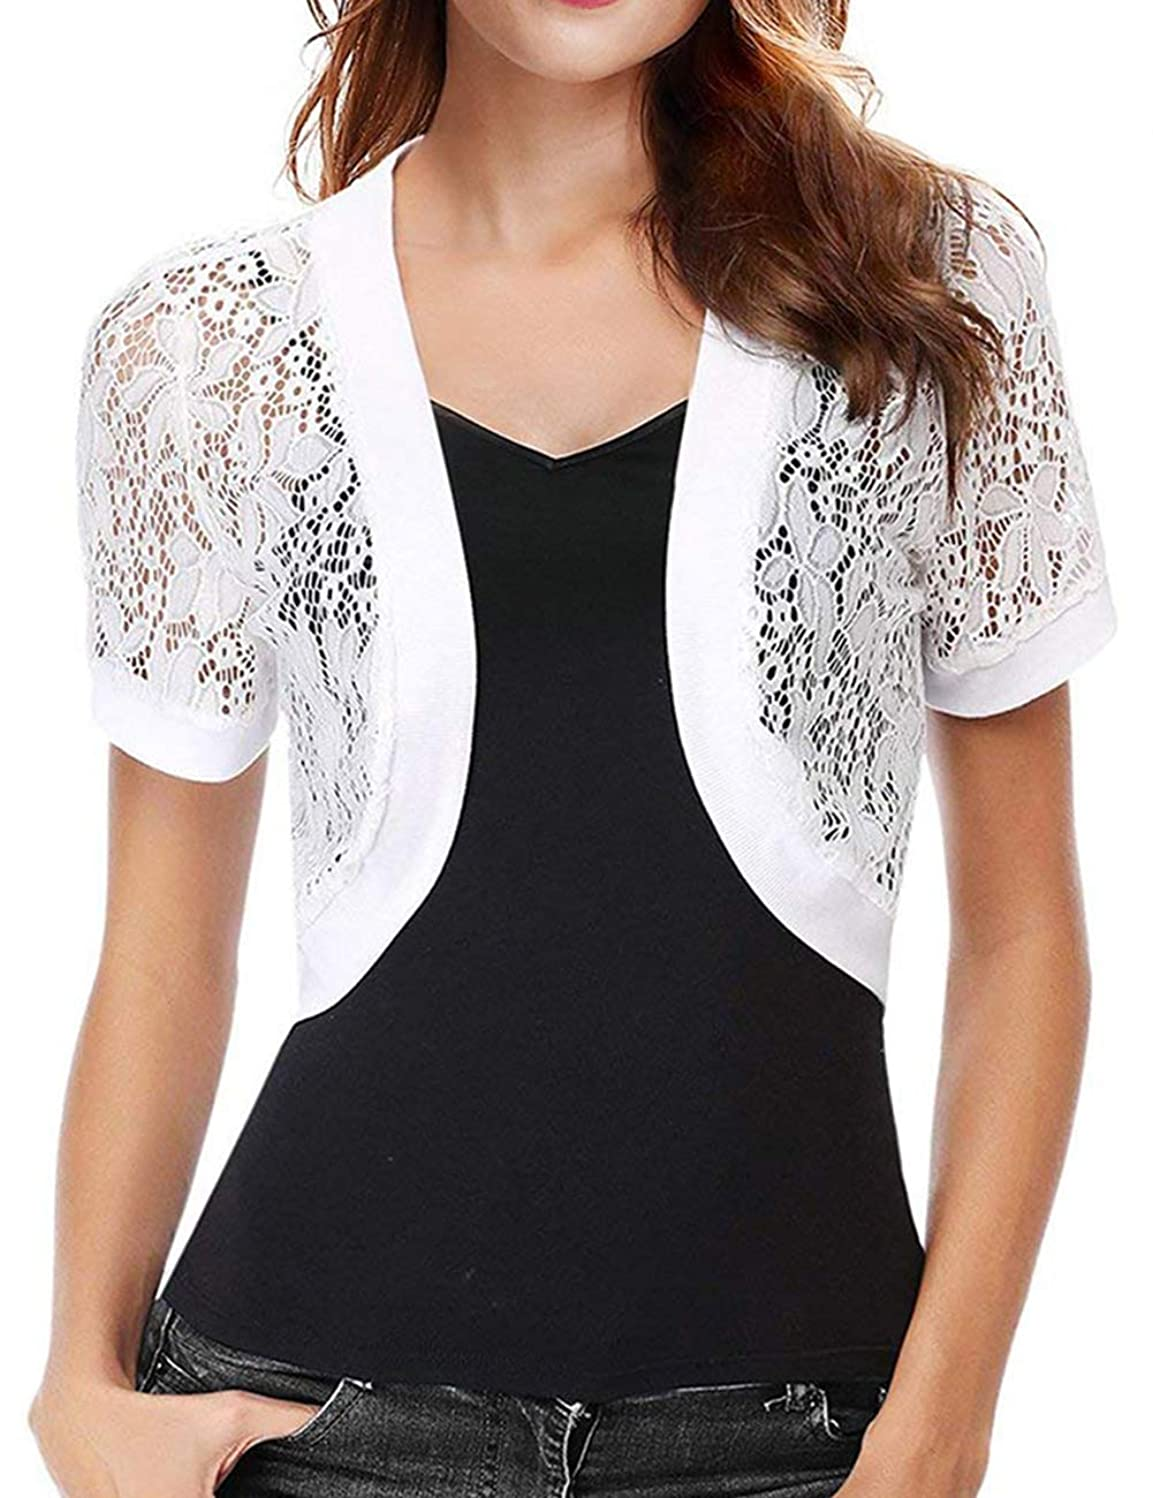 Womens Lace Shrug Short Sleeve Sheer Bolero Cardigan for Women Dresses Jacket